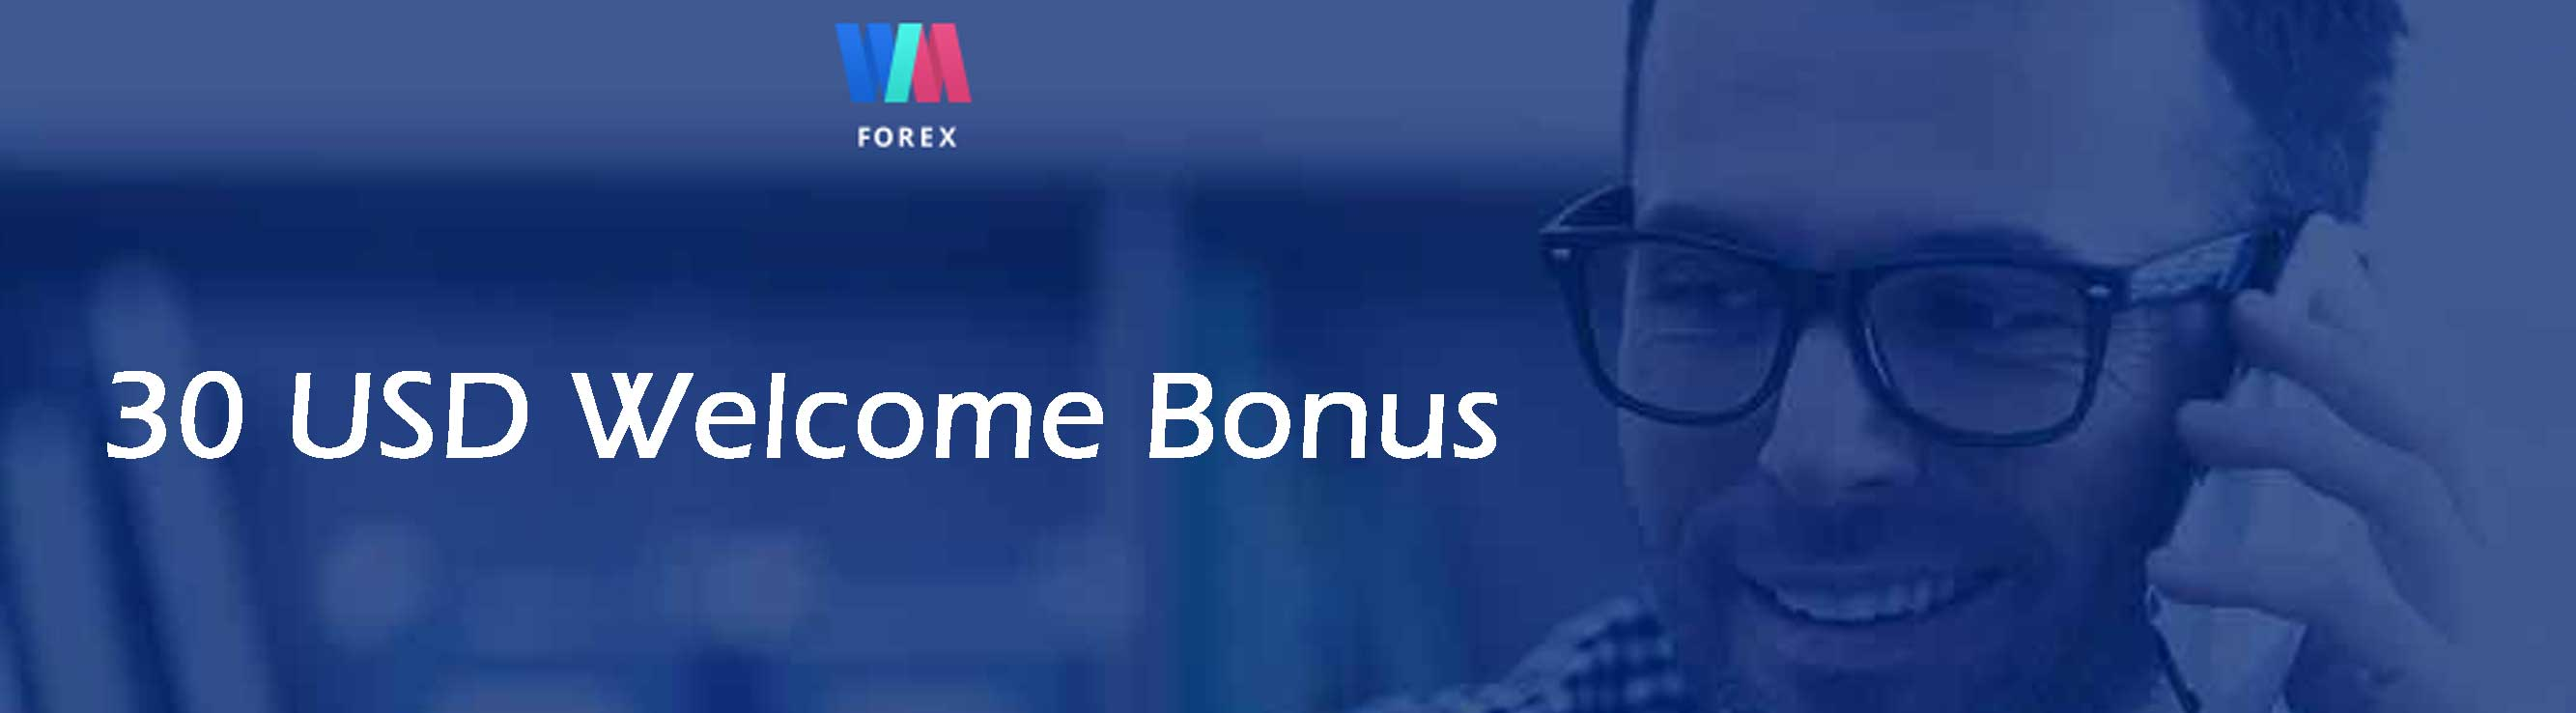 Forex no deposit bonus phone verification